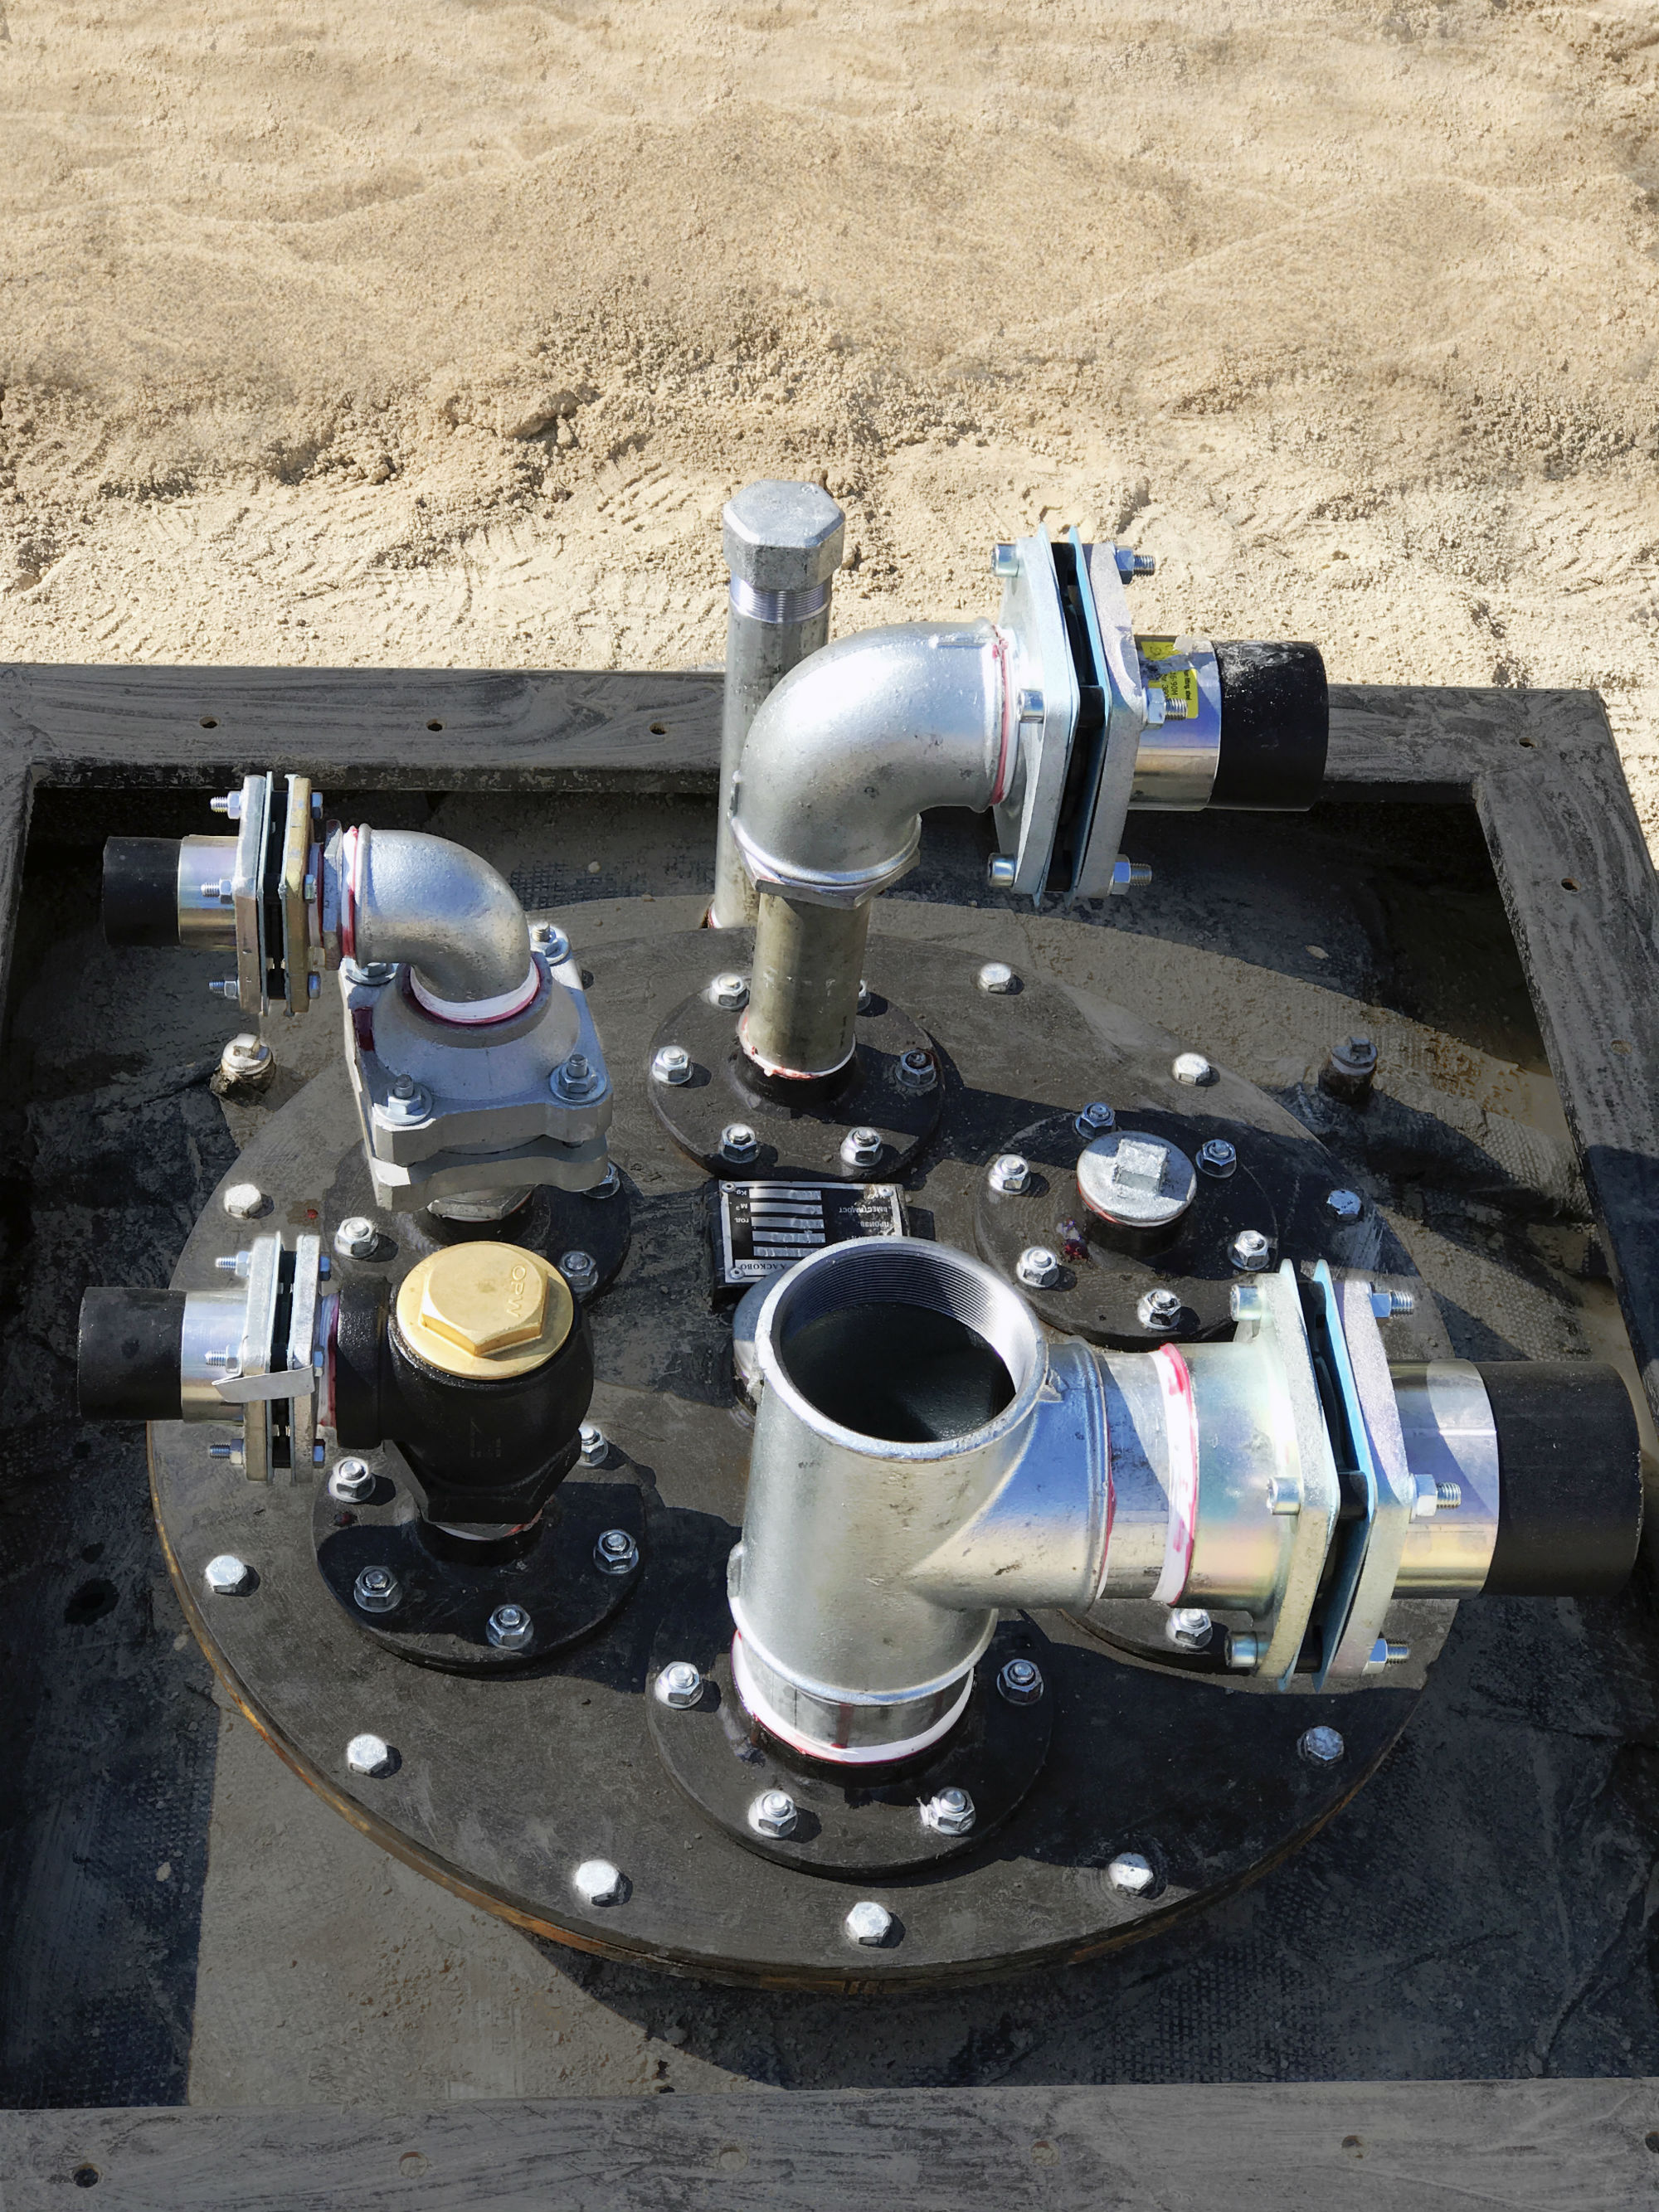 OPW 14NL angled check valve allows manual fuel flow control